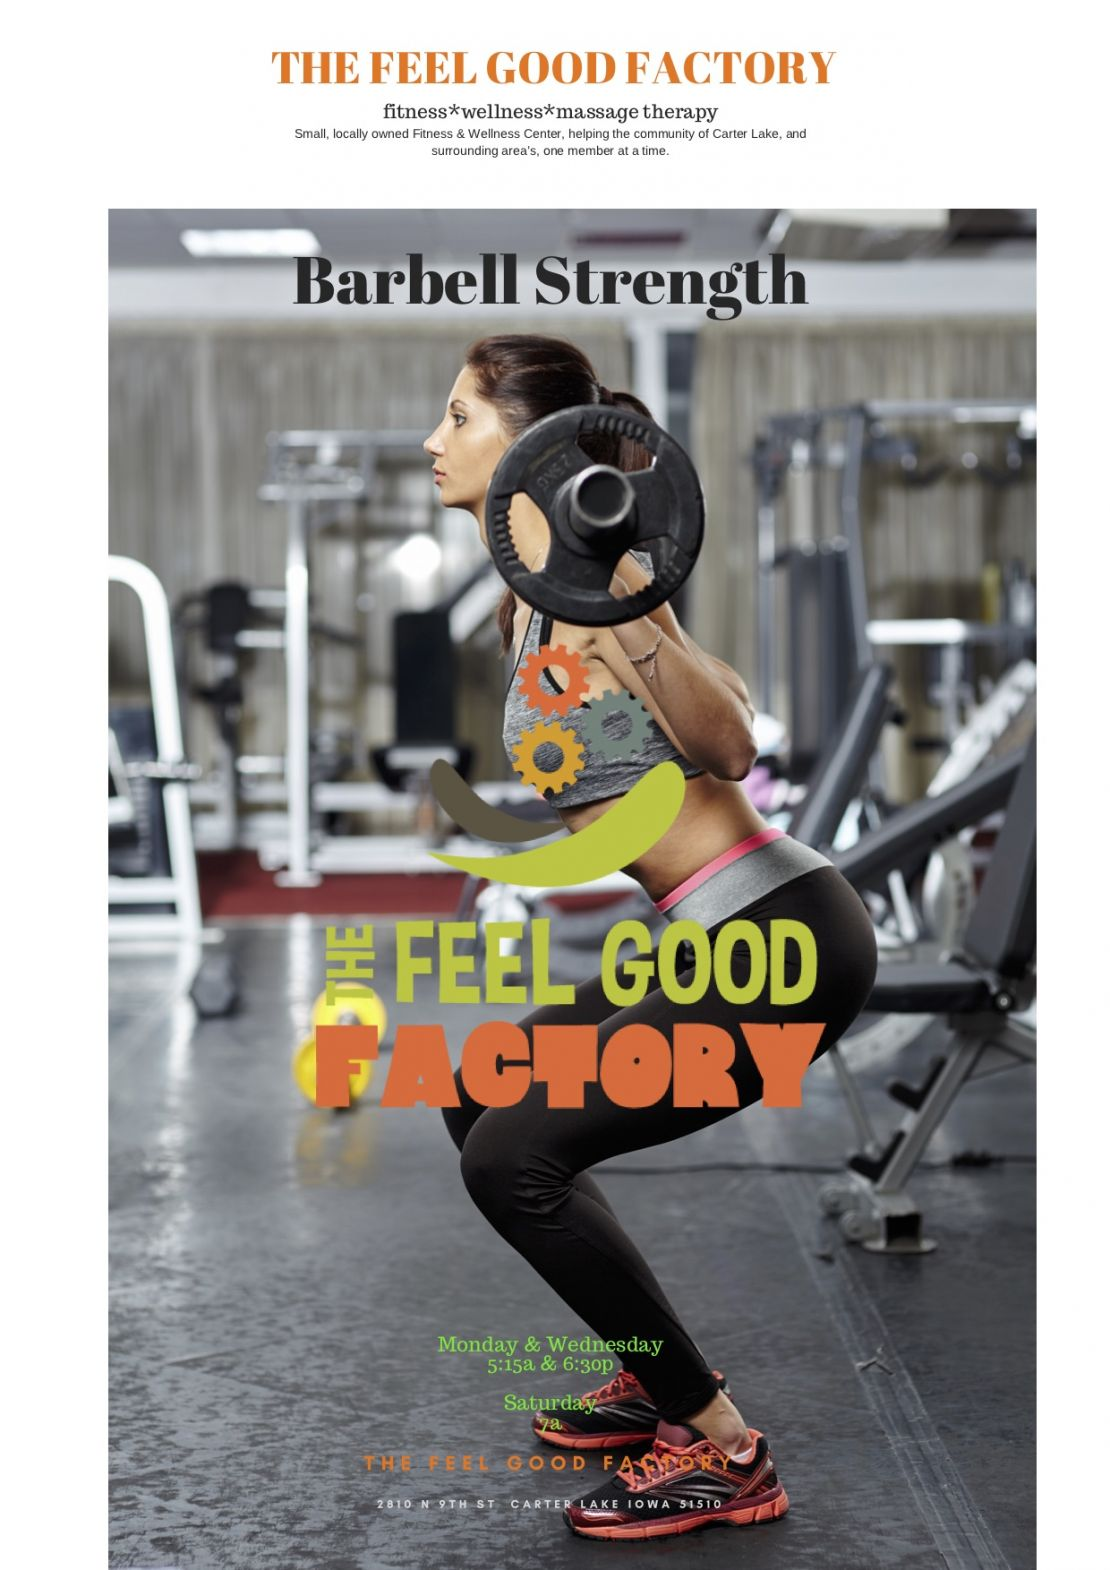 BARBELL, STRENGTH TRAINING, LOSE WEIGHT, INCREASE METABOLISM, STRONGER